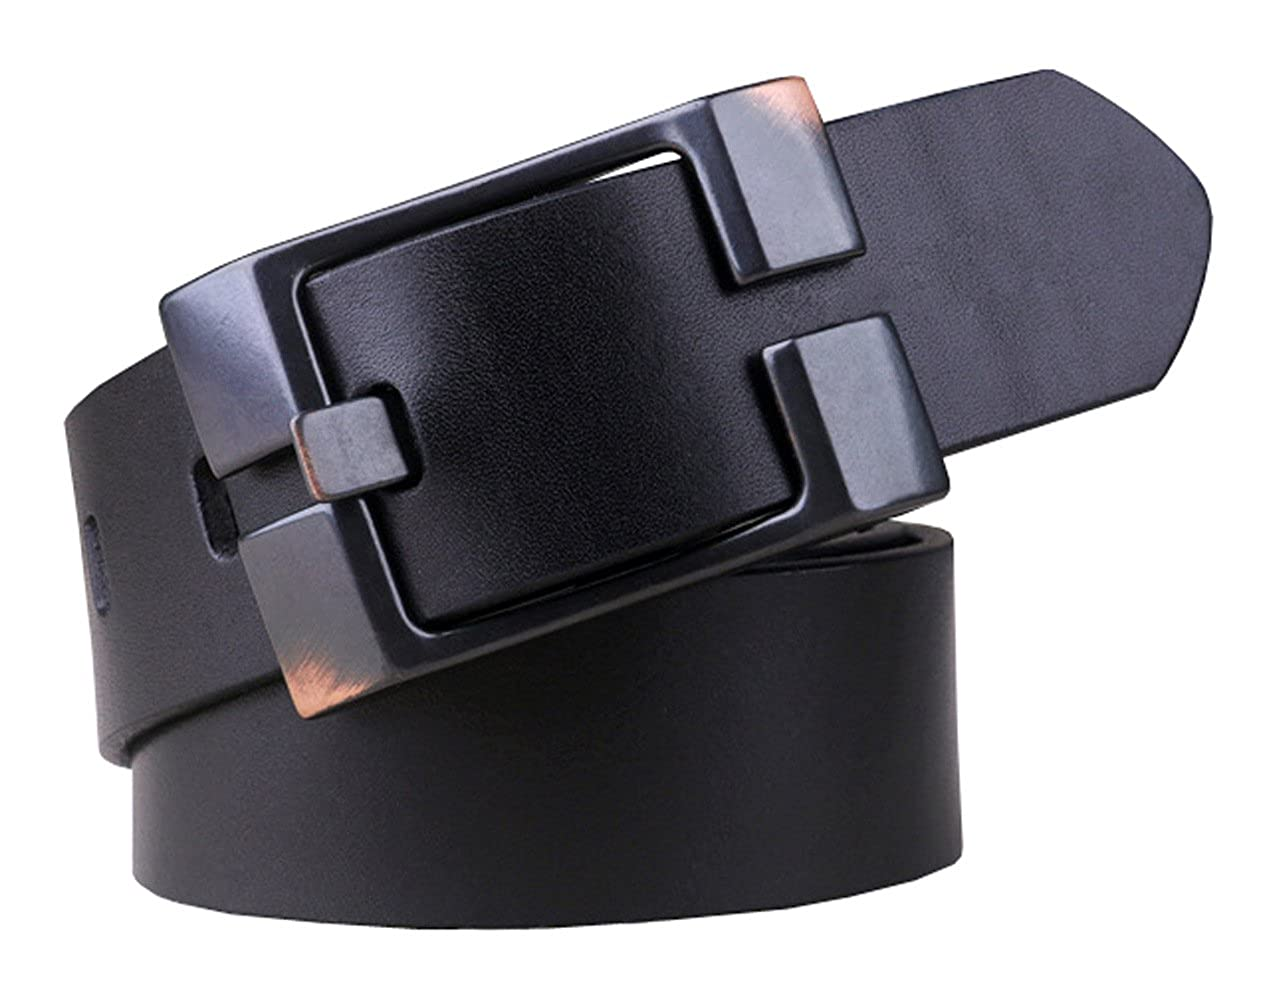 Capplue Casual Square Pin Buckle Mens Belts Full Grain Leather Belt Black Belt 38inch